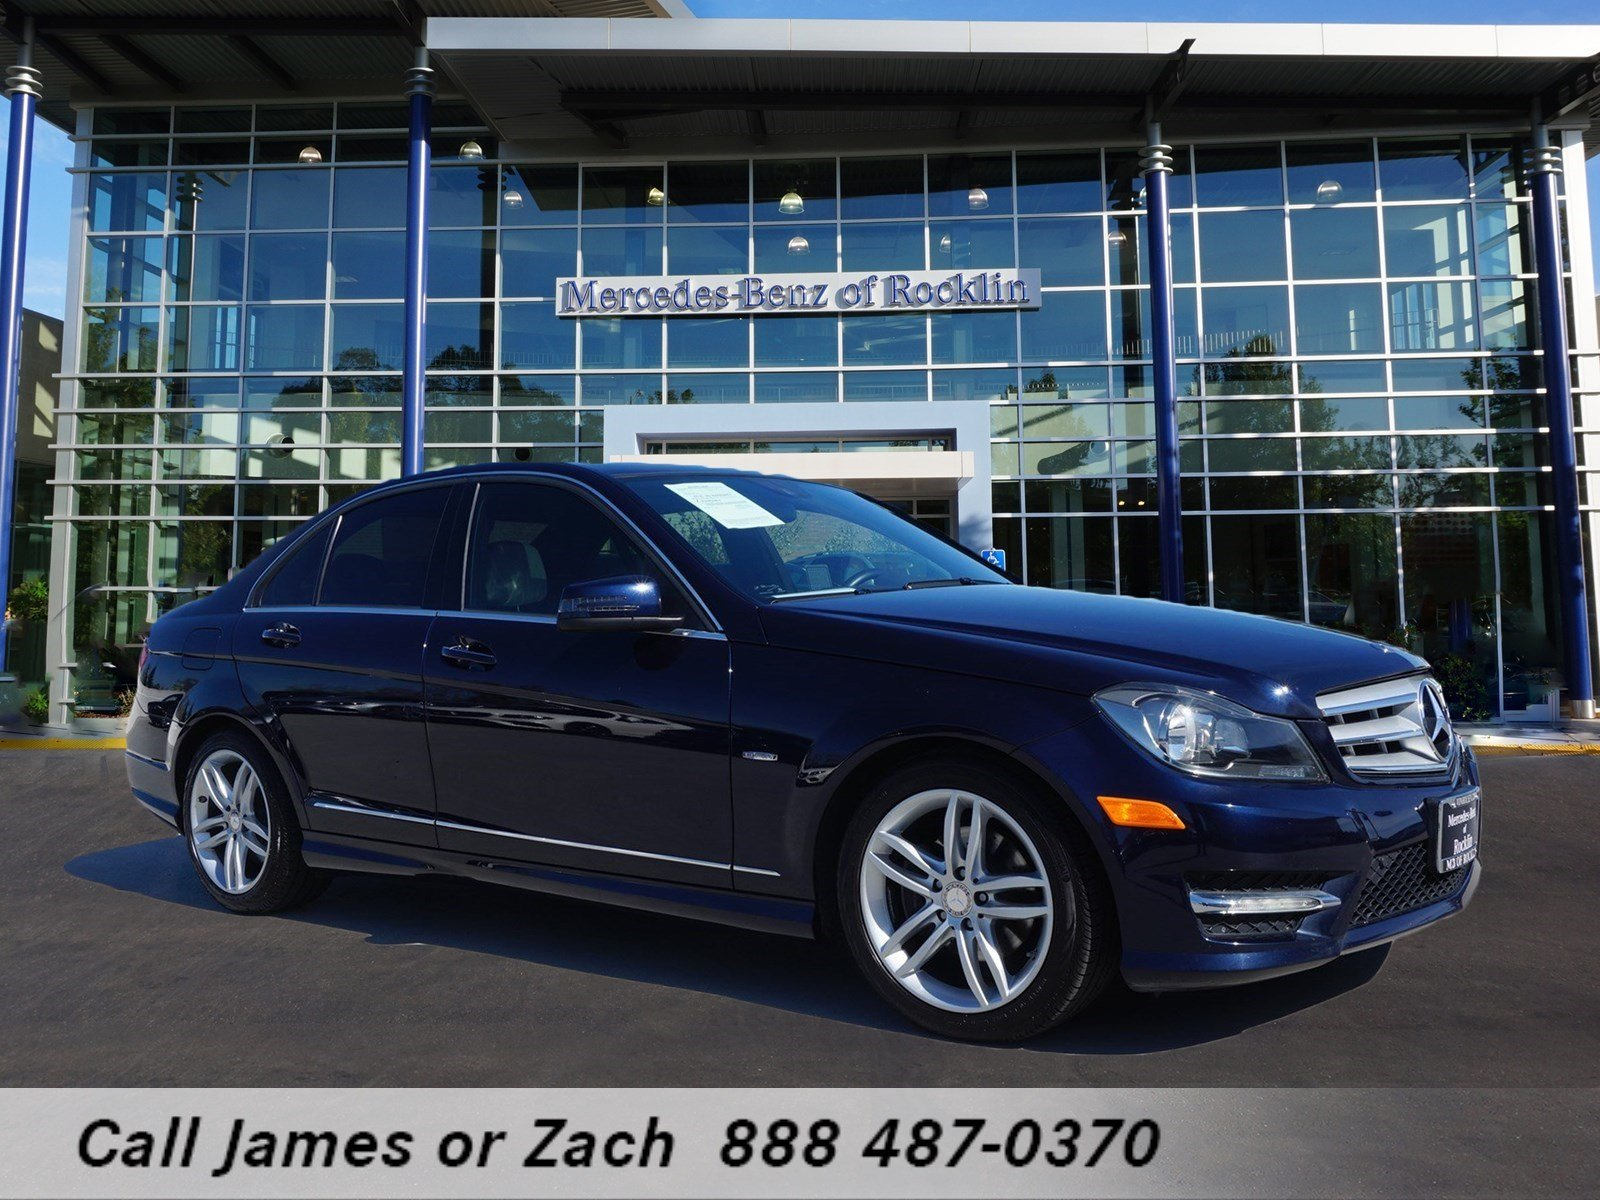 Pre owned 2012 mercedes benz c class c250 sport 4dr car in for Mercedes benz sacramento rocklin